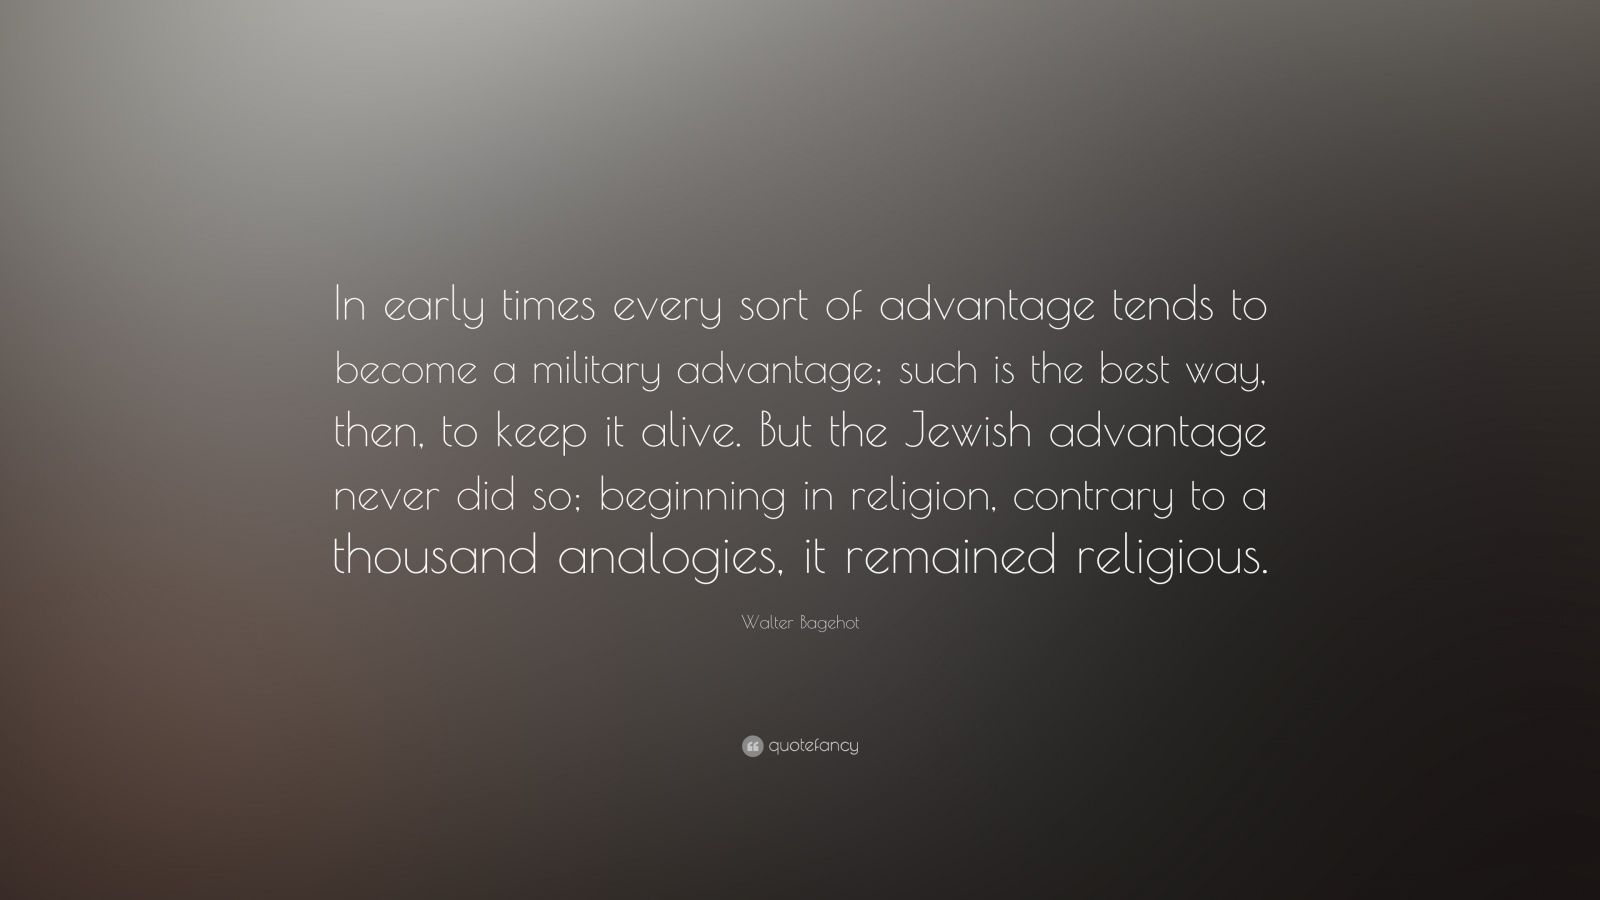 """Walter Bagehot Quote: """"In early times every sort of advantage tends to become a military advantage; such is the best way, then, to keep it alive. But the Jewish advantage never did so; beginning in religion, contrary to a thousand analogies, it remained religious."""""""